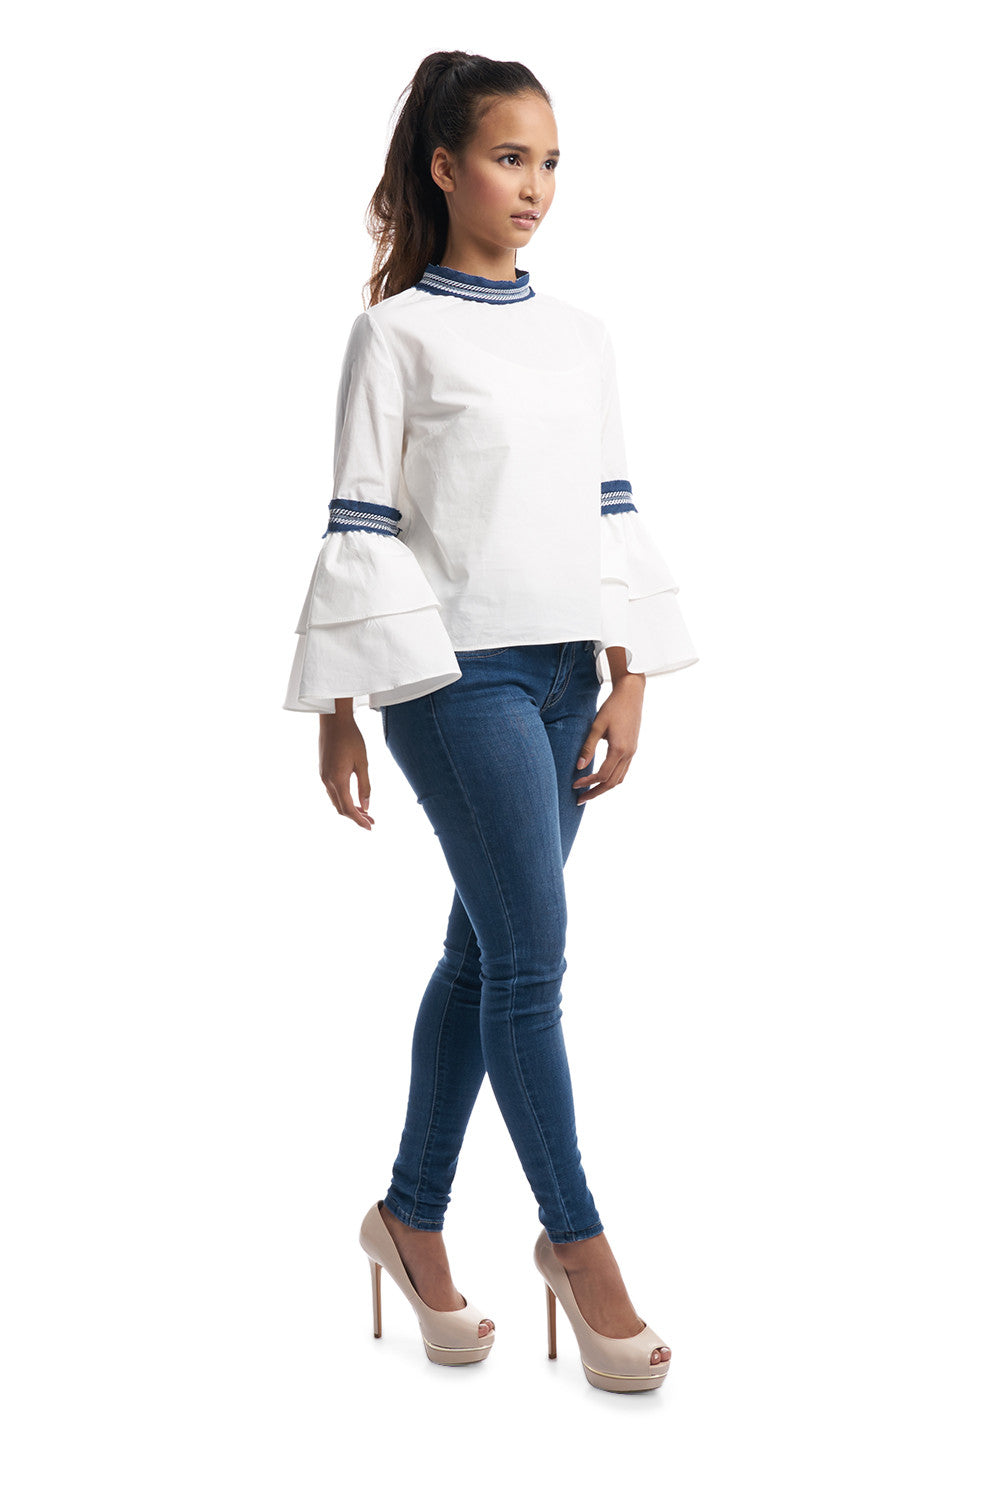 Bell Sleeves Top with Denim Trimmings (White)